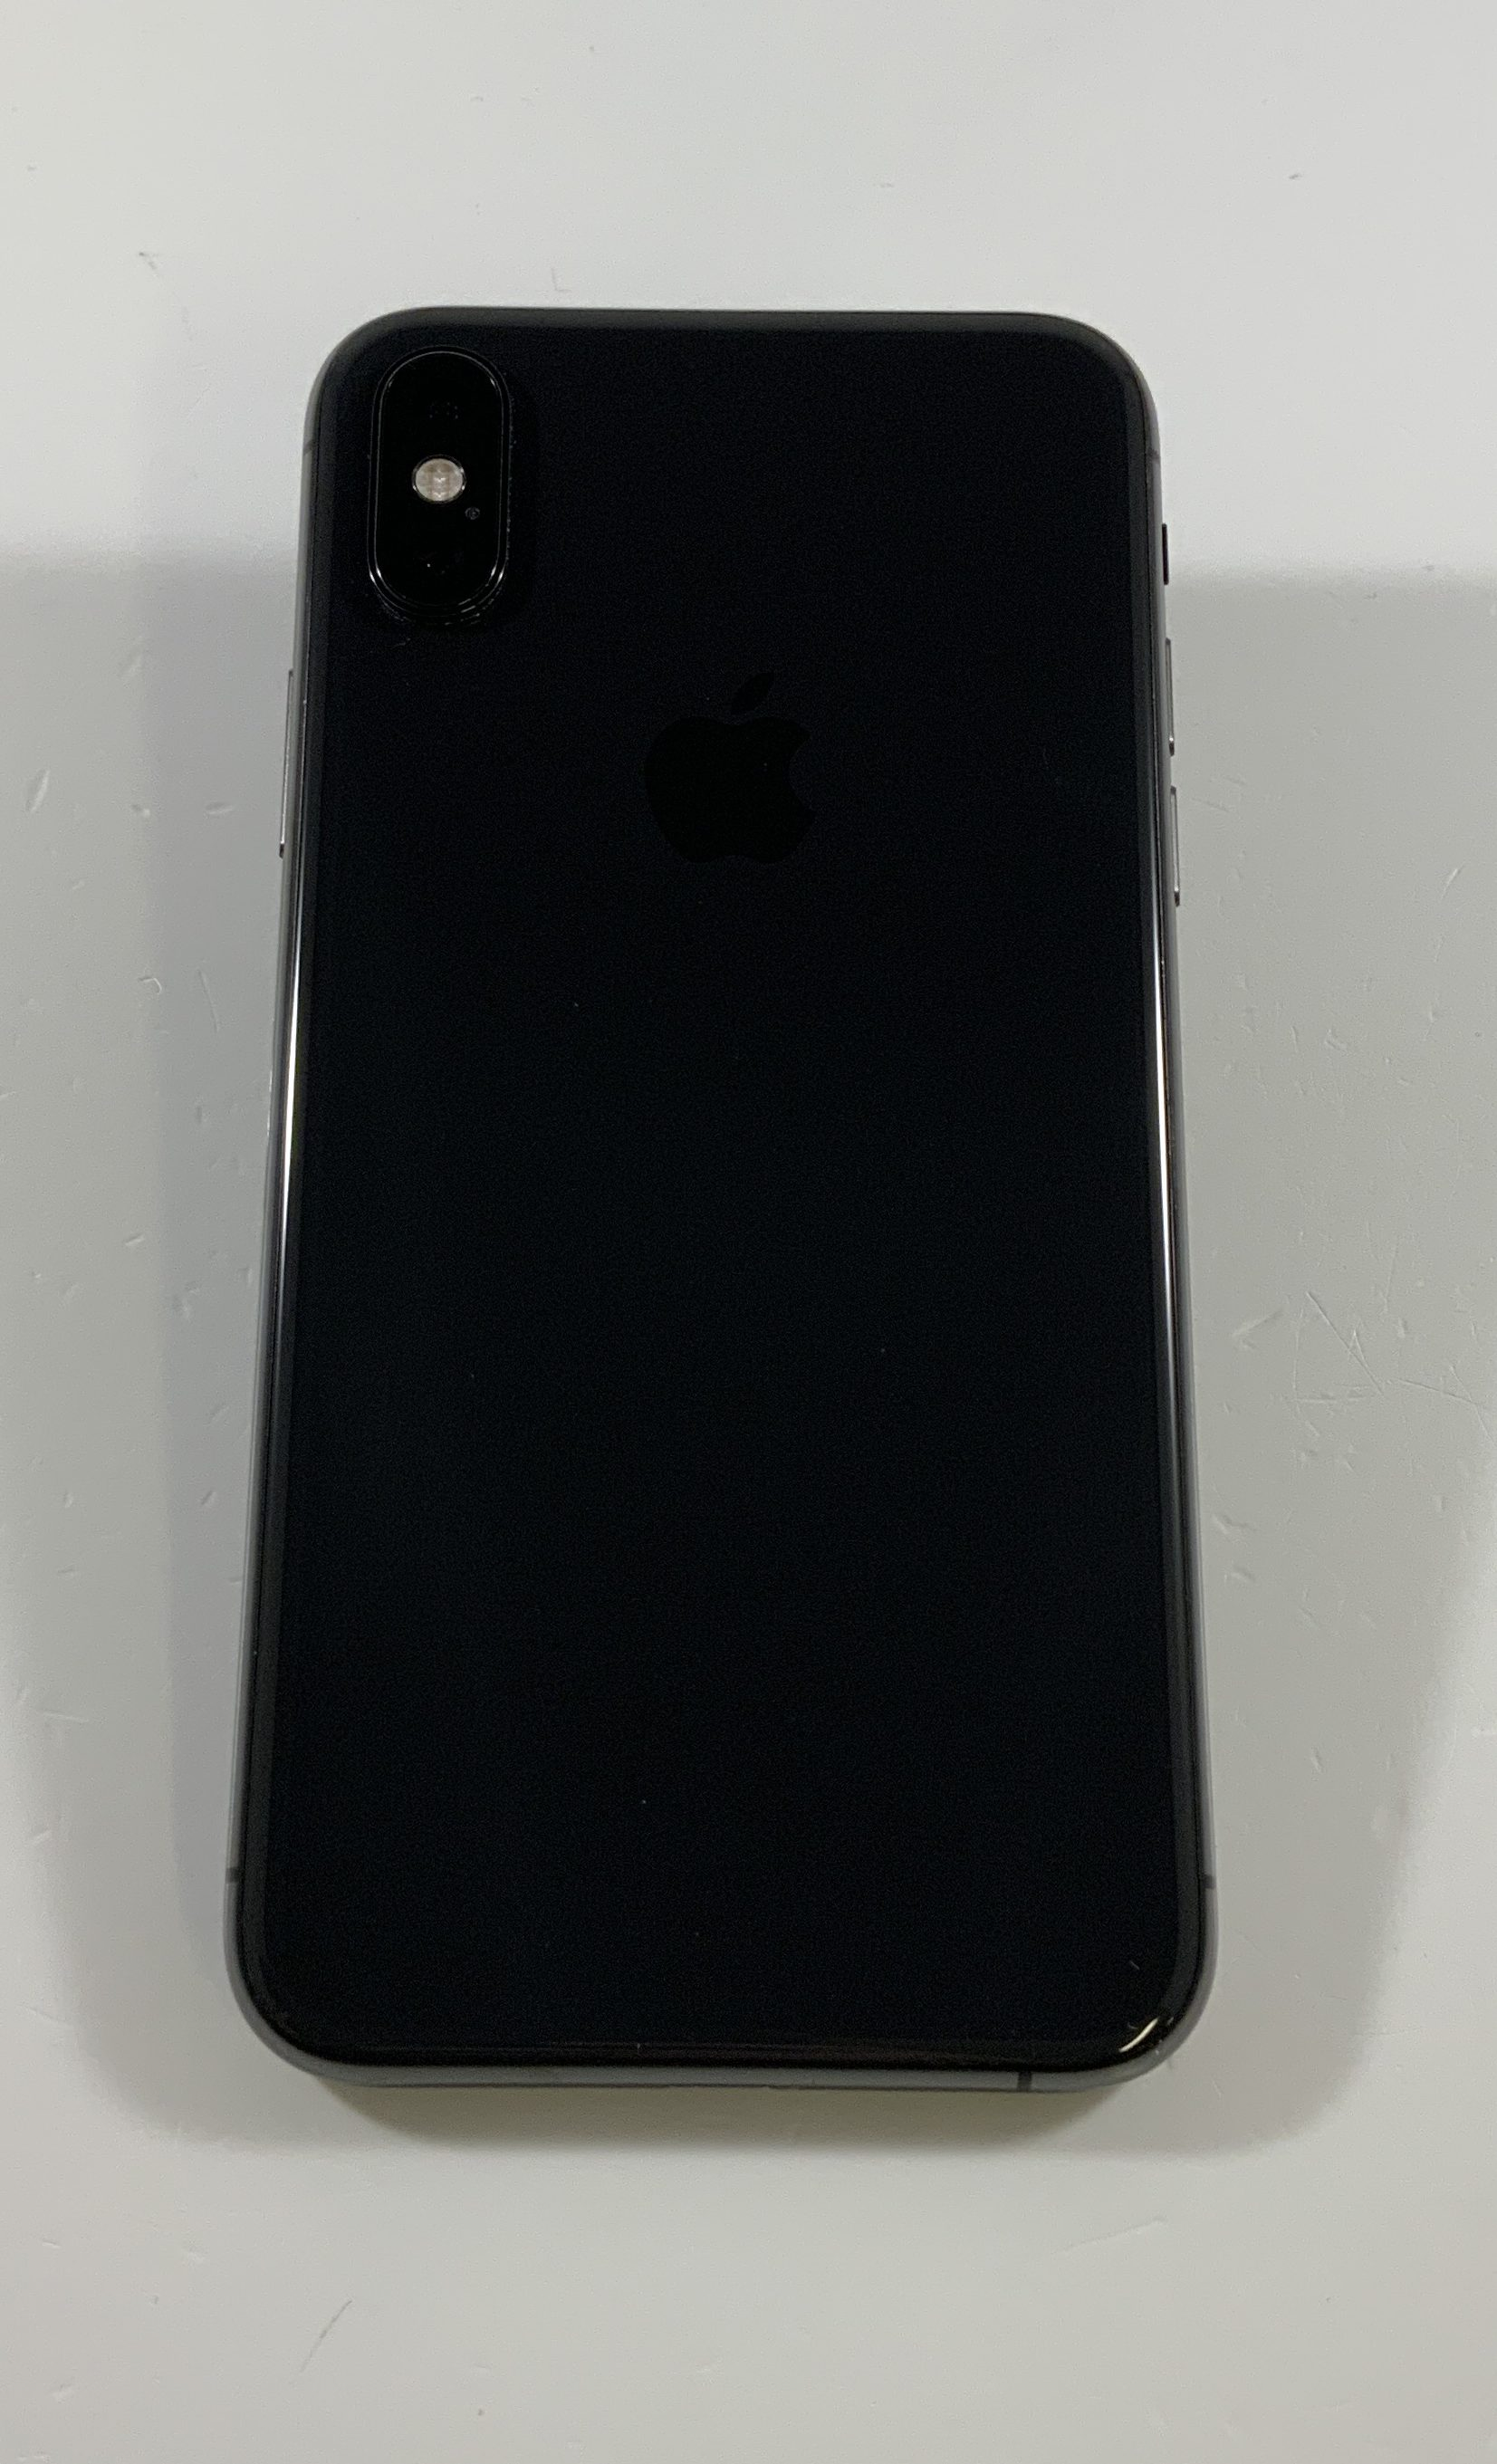 iPhone XS 64GB, 64GB, Space Gray, immagine 2